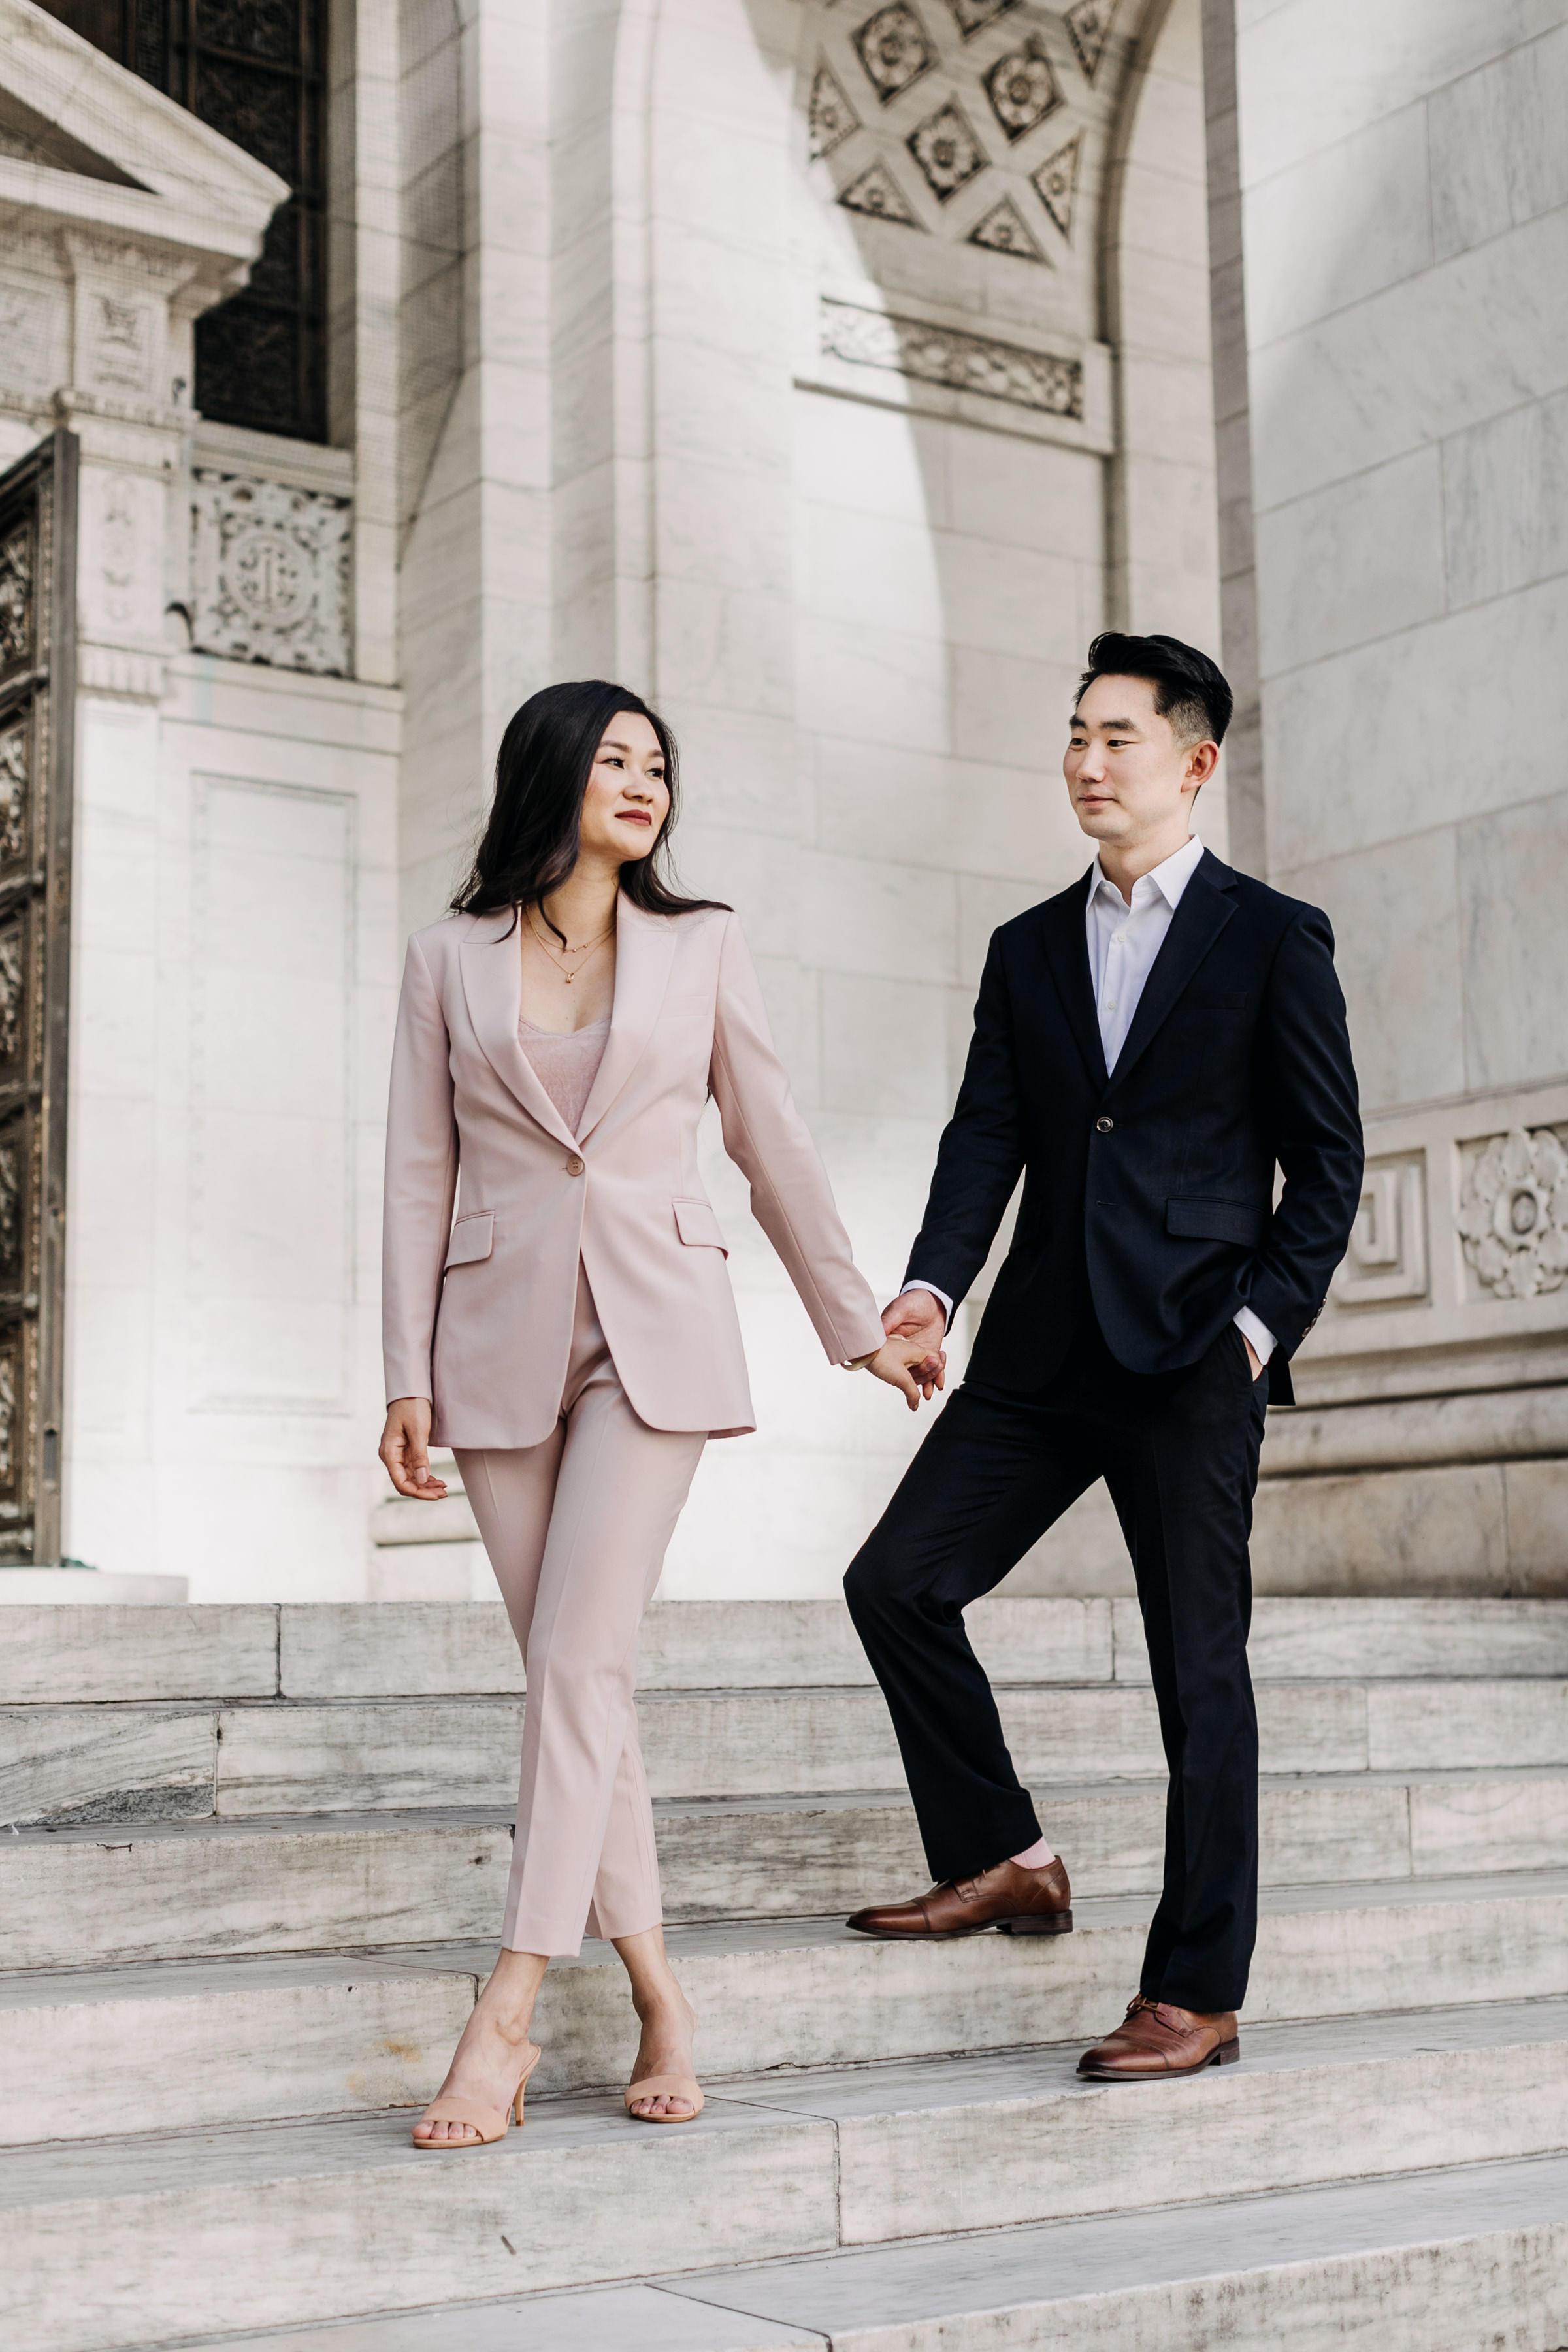 ENGAGEMENTKYLIE&TIM - A Stylish NYC Engagement Session at the NYC Public Library